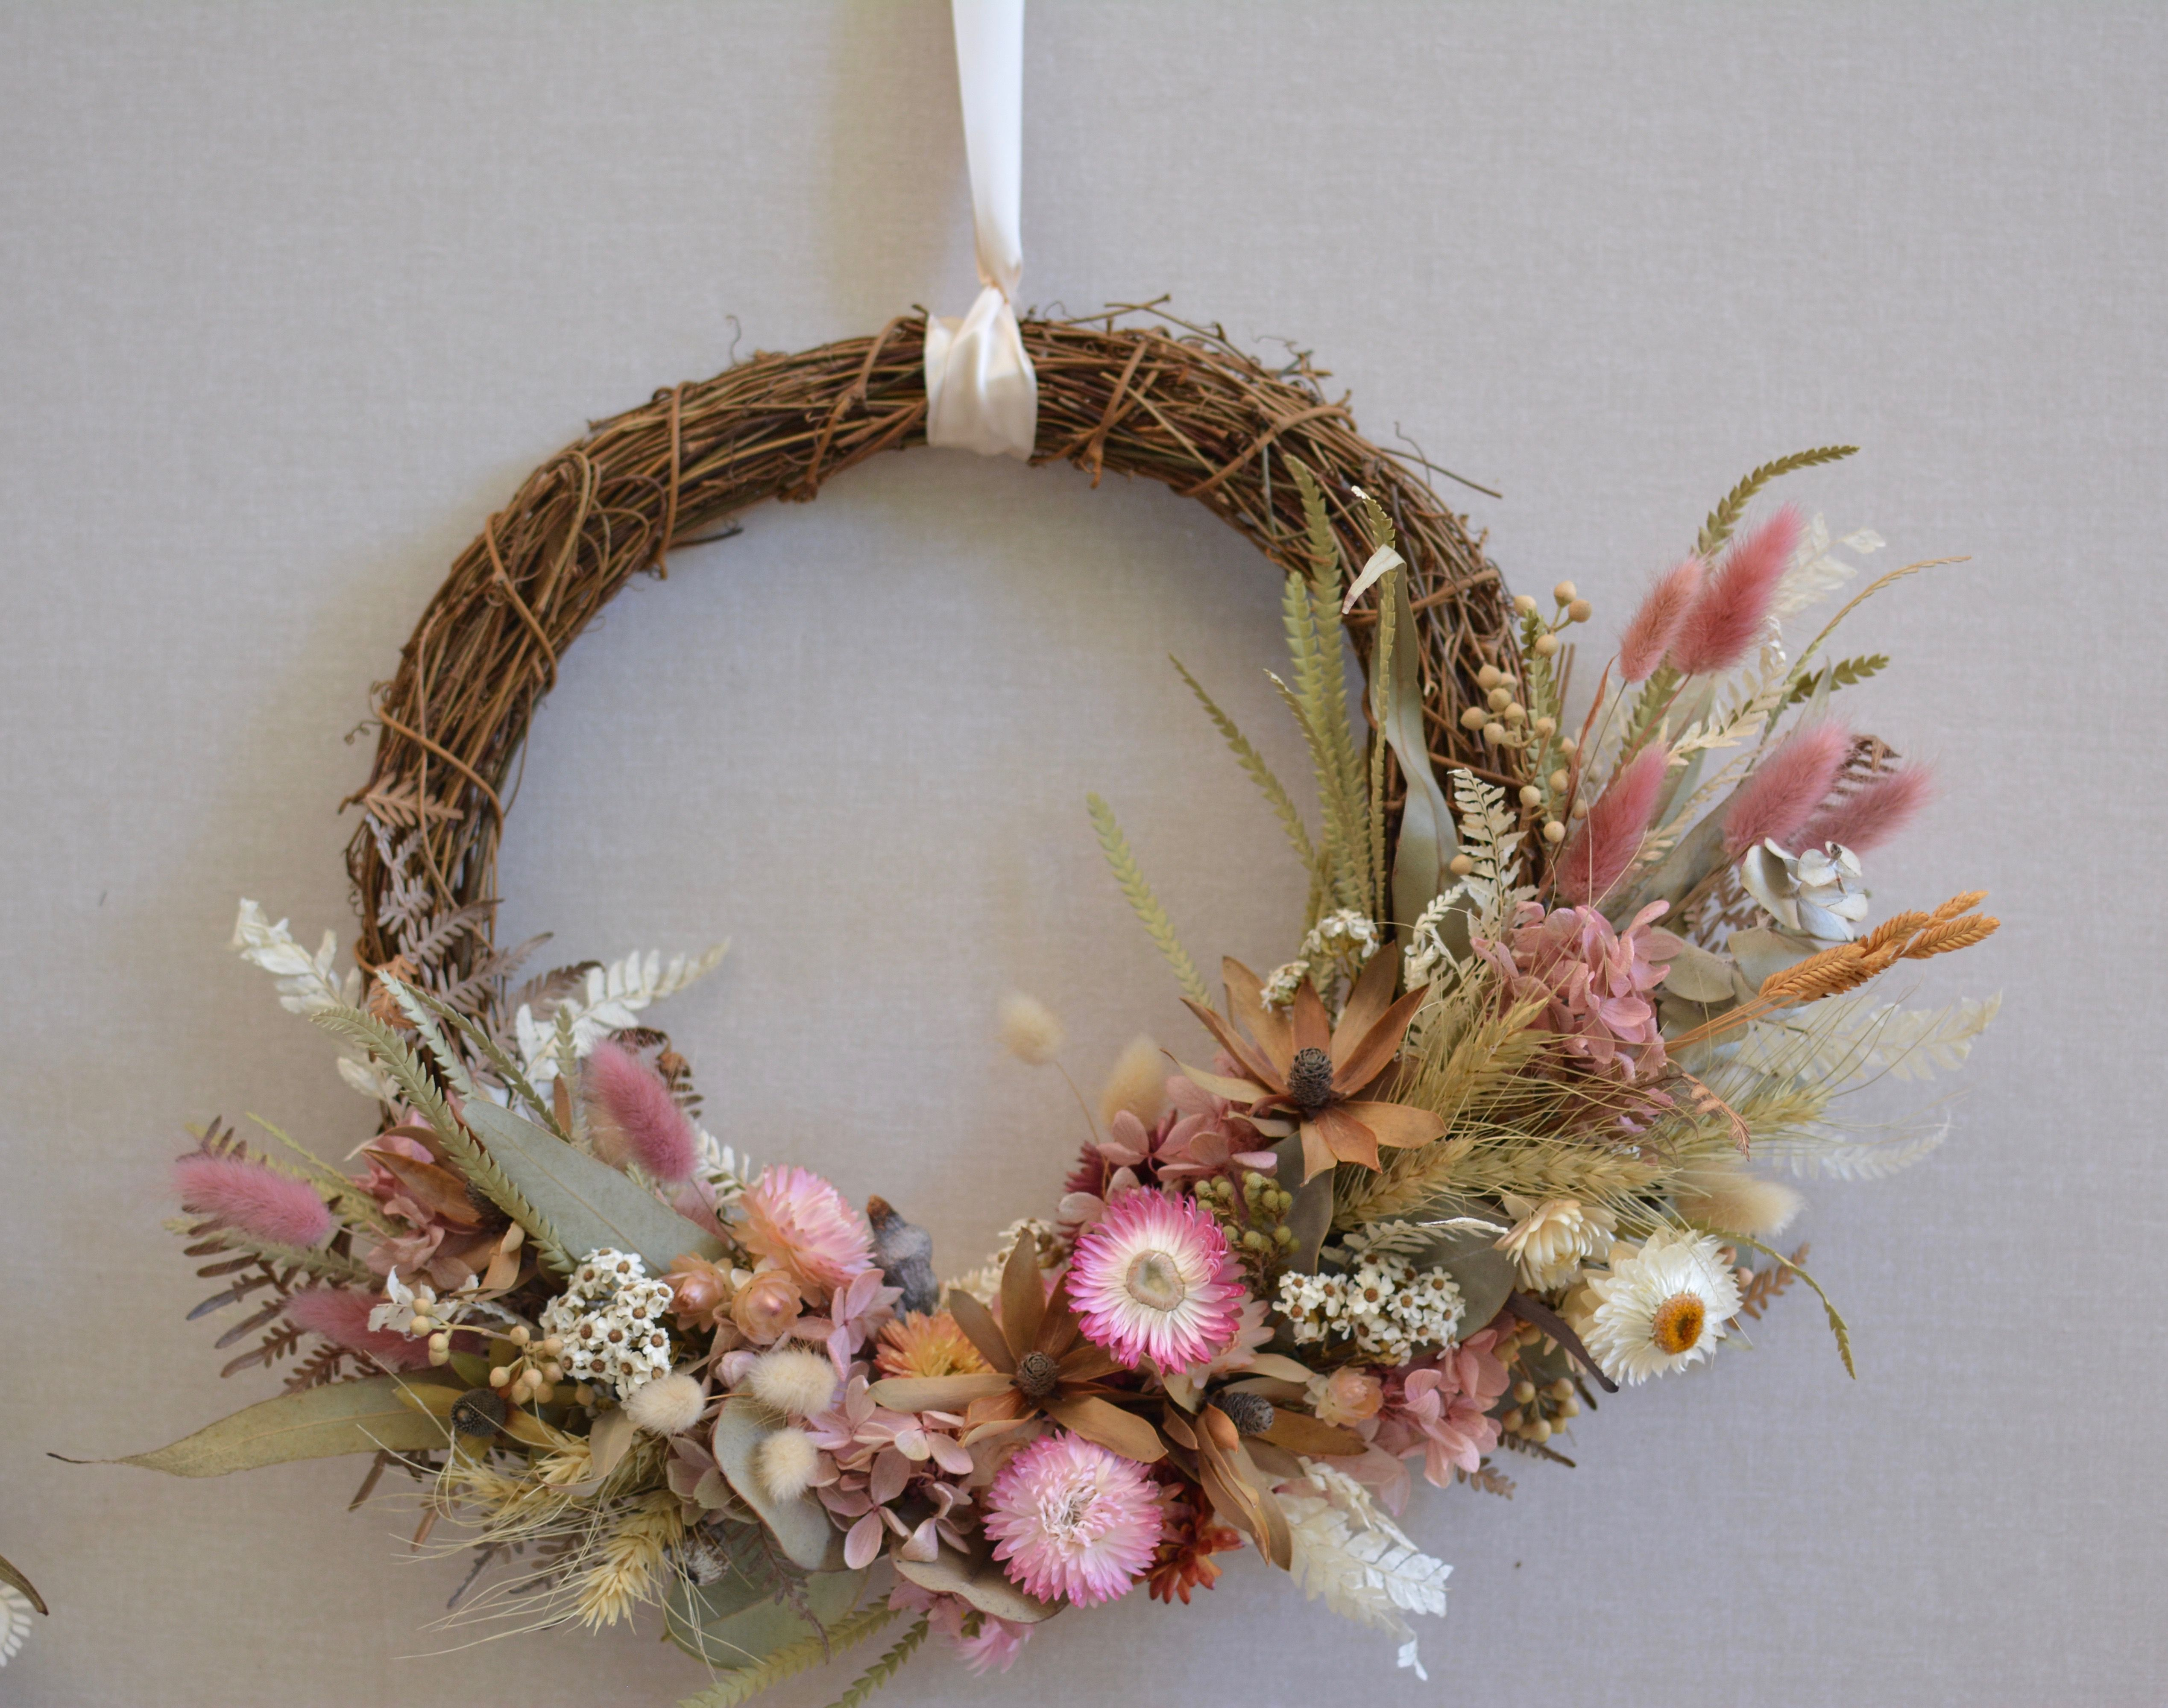 Long Lasting Preserved Dried Flower Wreath How To Preserve Flowers Flower Delivery Flower Wreath